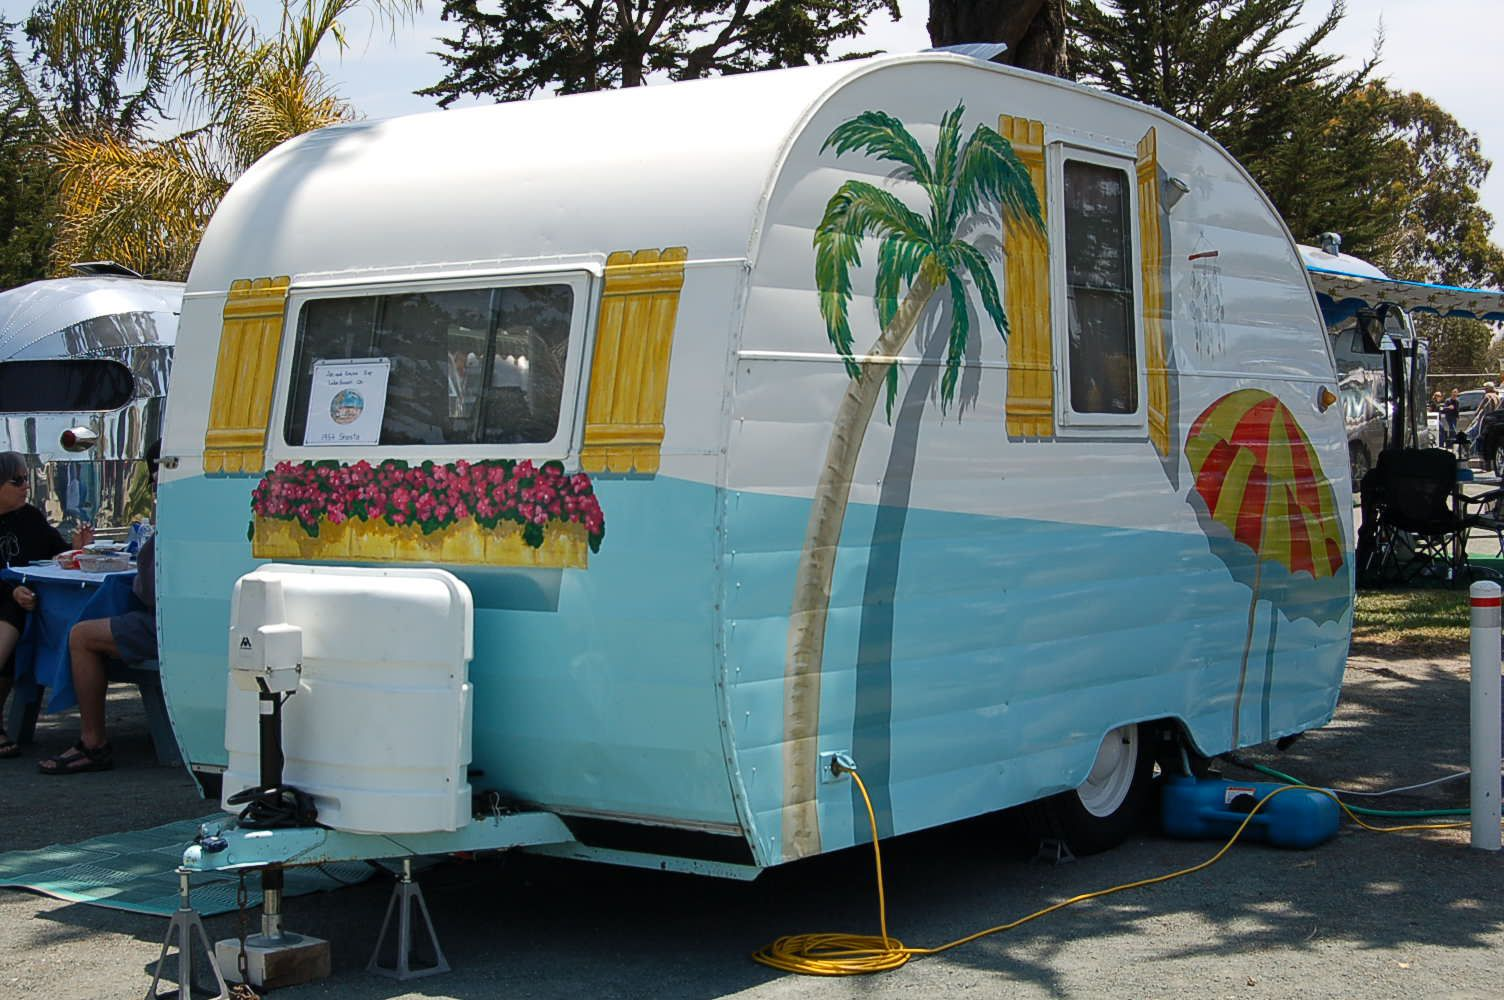 1954 Shasta Trailer Hand Painted Tropical Palm Tree